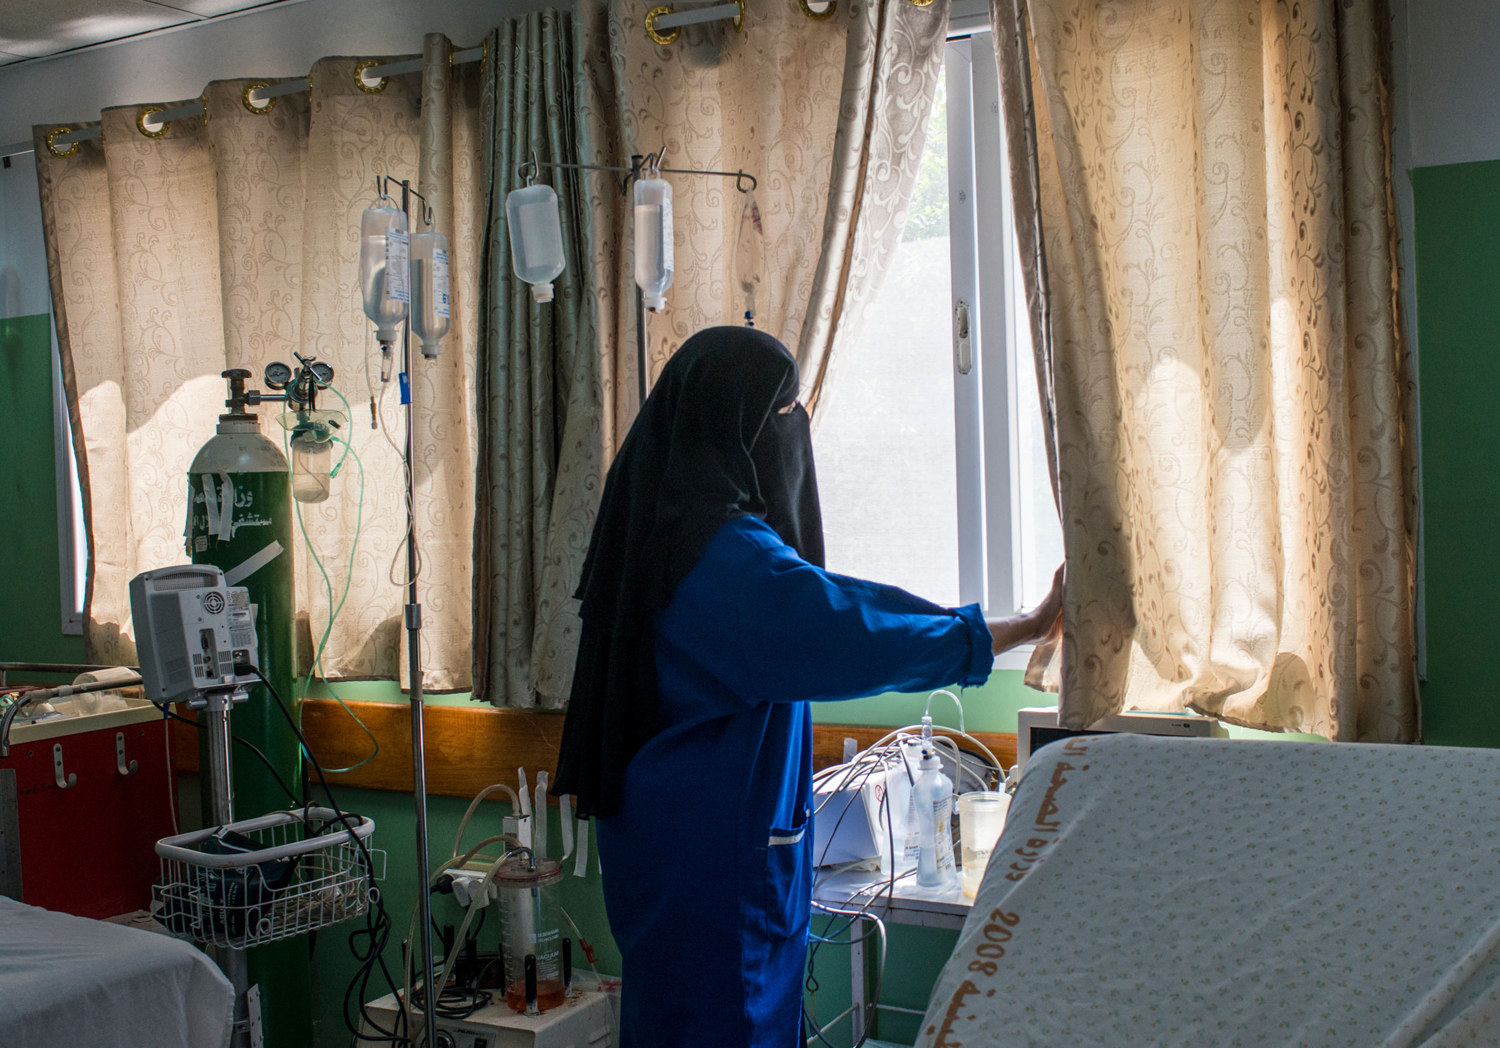 A nurse looks out the window of a hospital in Rafah waiting for more ambulances to bring in corpses after the ground invasion in Gaza.